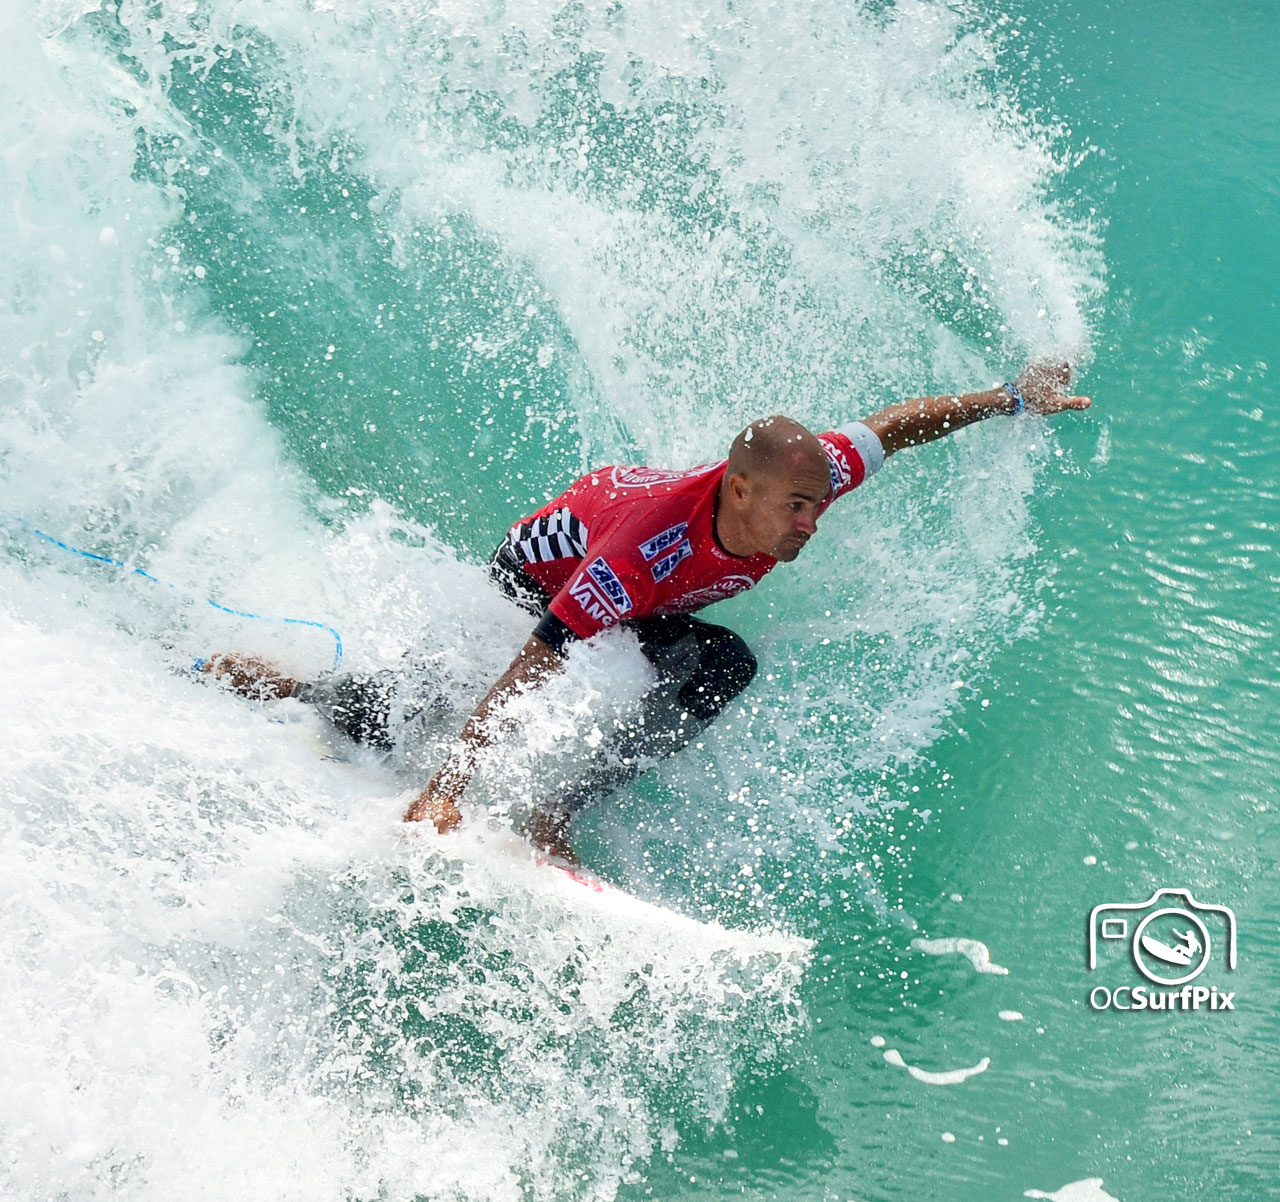 US Open of Surfing 2013